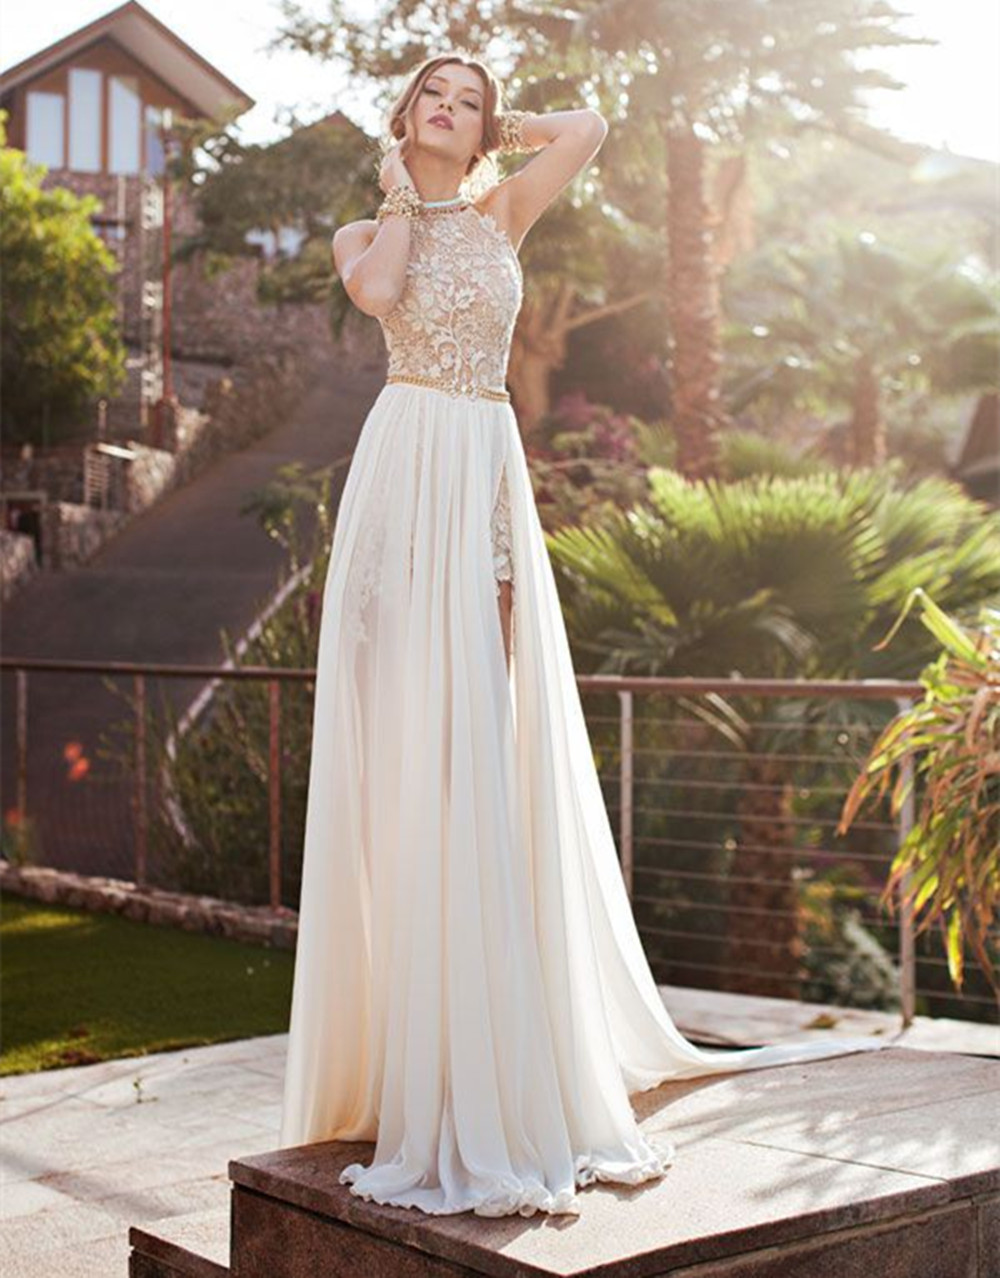 Elegant Women Bohemian Hot Split A-line Halter Rhinestone Bead Lace Chiffon Long Bridal Gown Wedding Dress 2015 Fashion